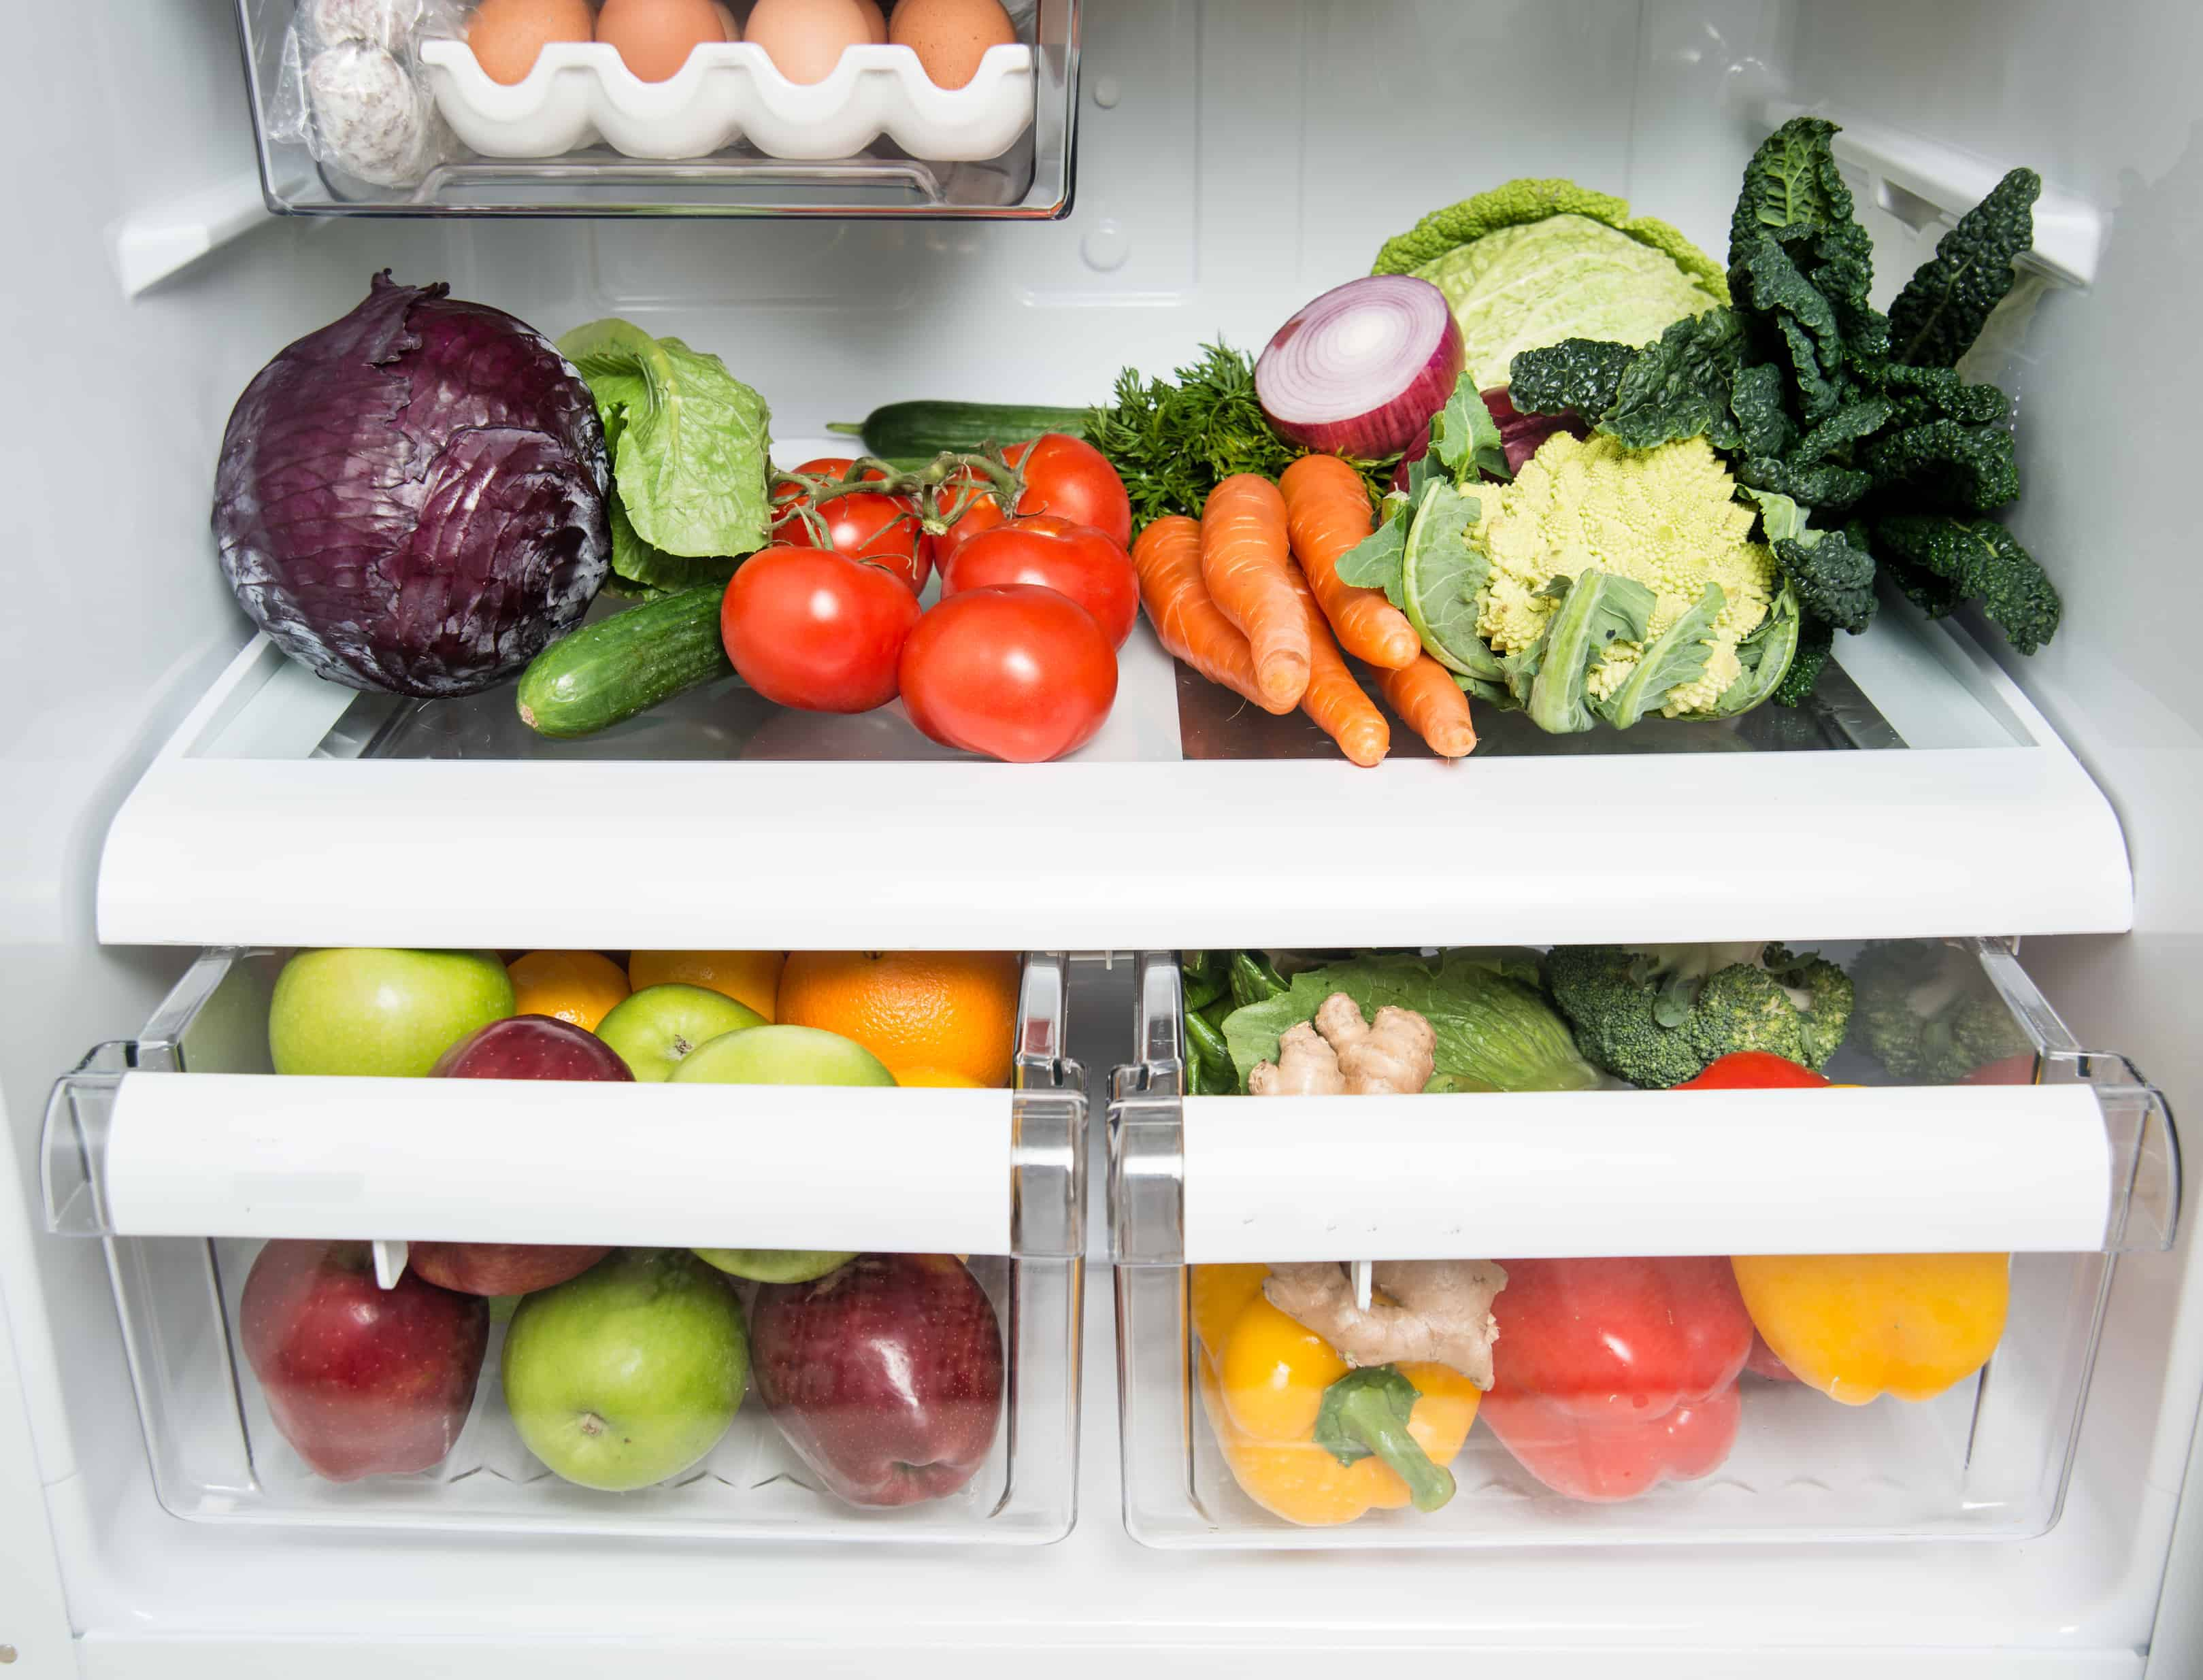 How to best use your refrigerator